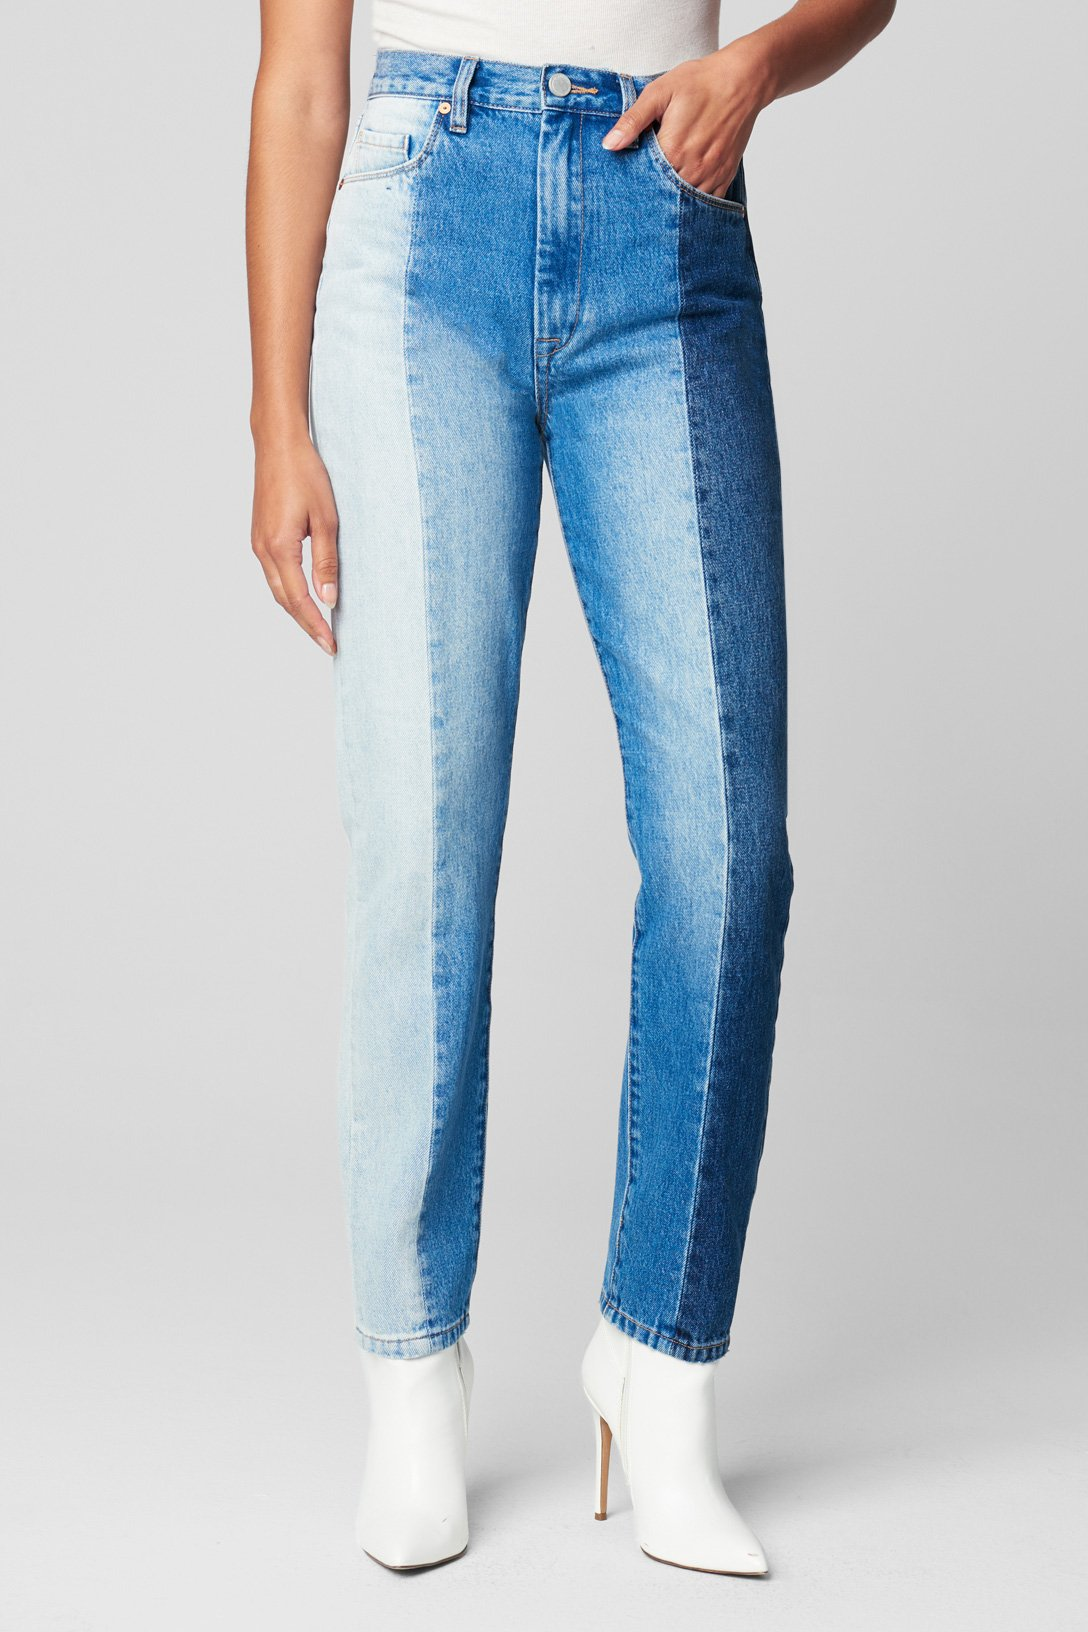 Blank NYC PATCHWORK ULTRA HIGH RISE SKINNY JEANS